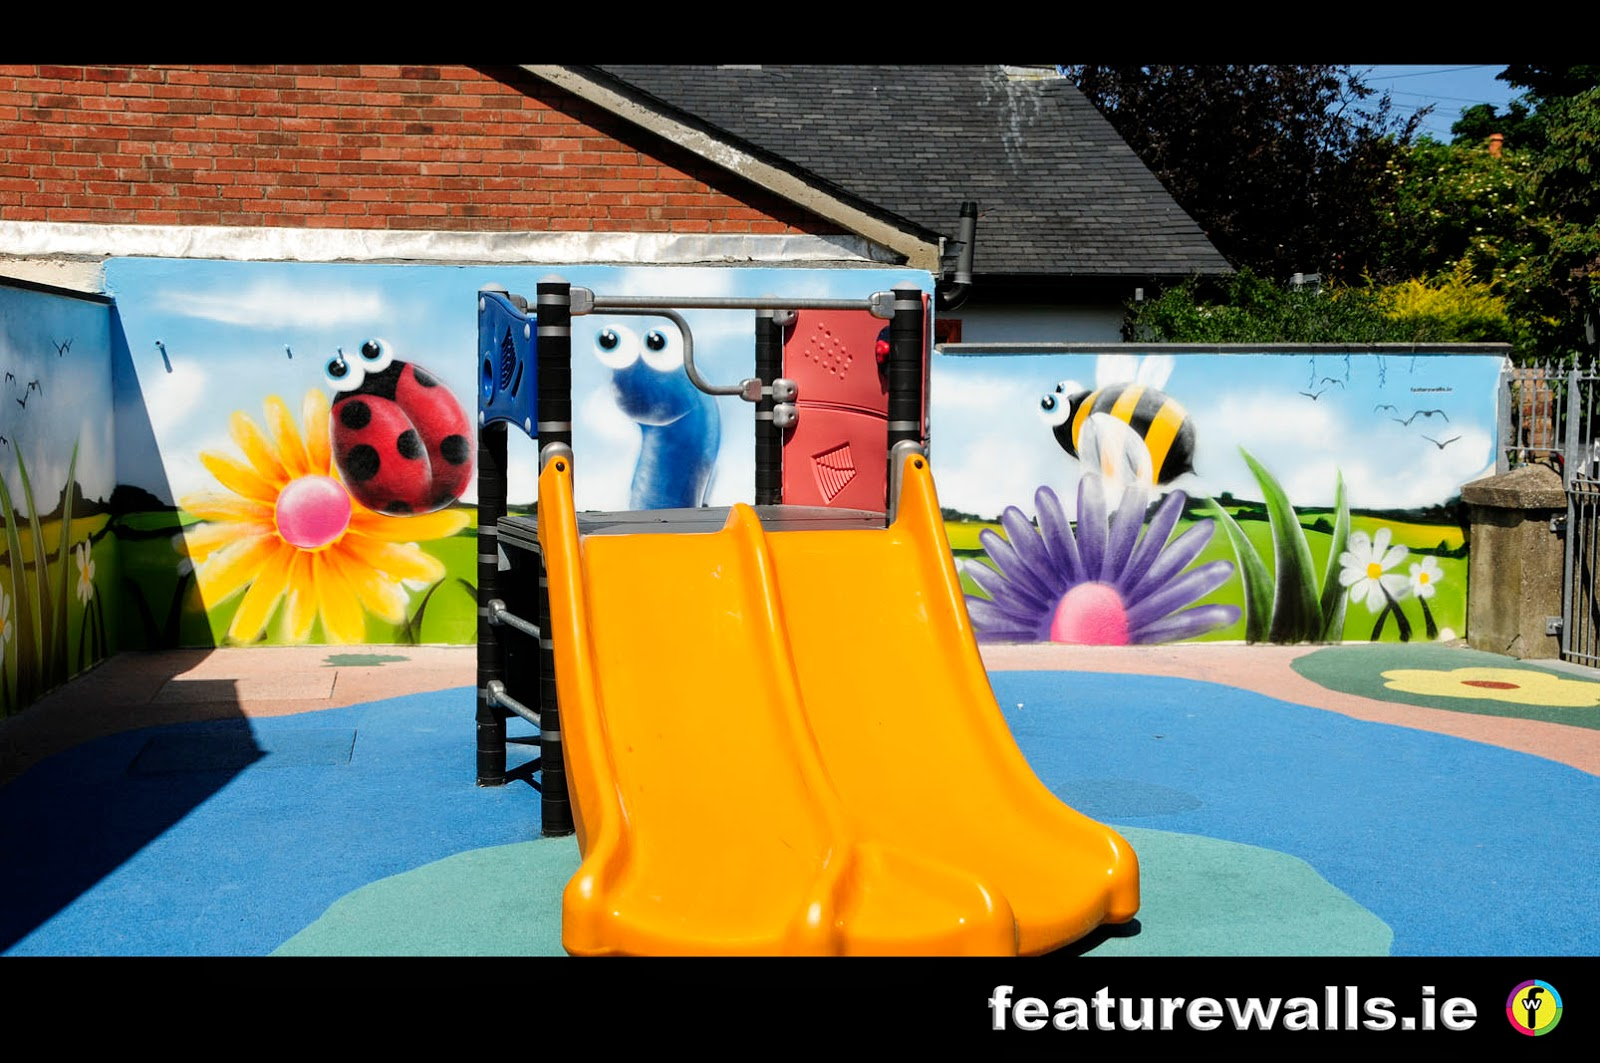 1000 images about school playground mural ideas on pinterest for Community mural ideas